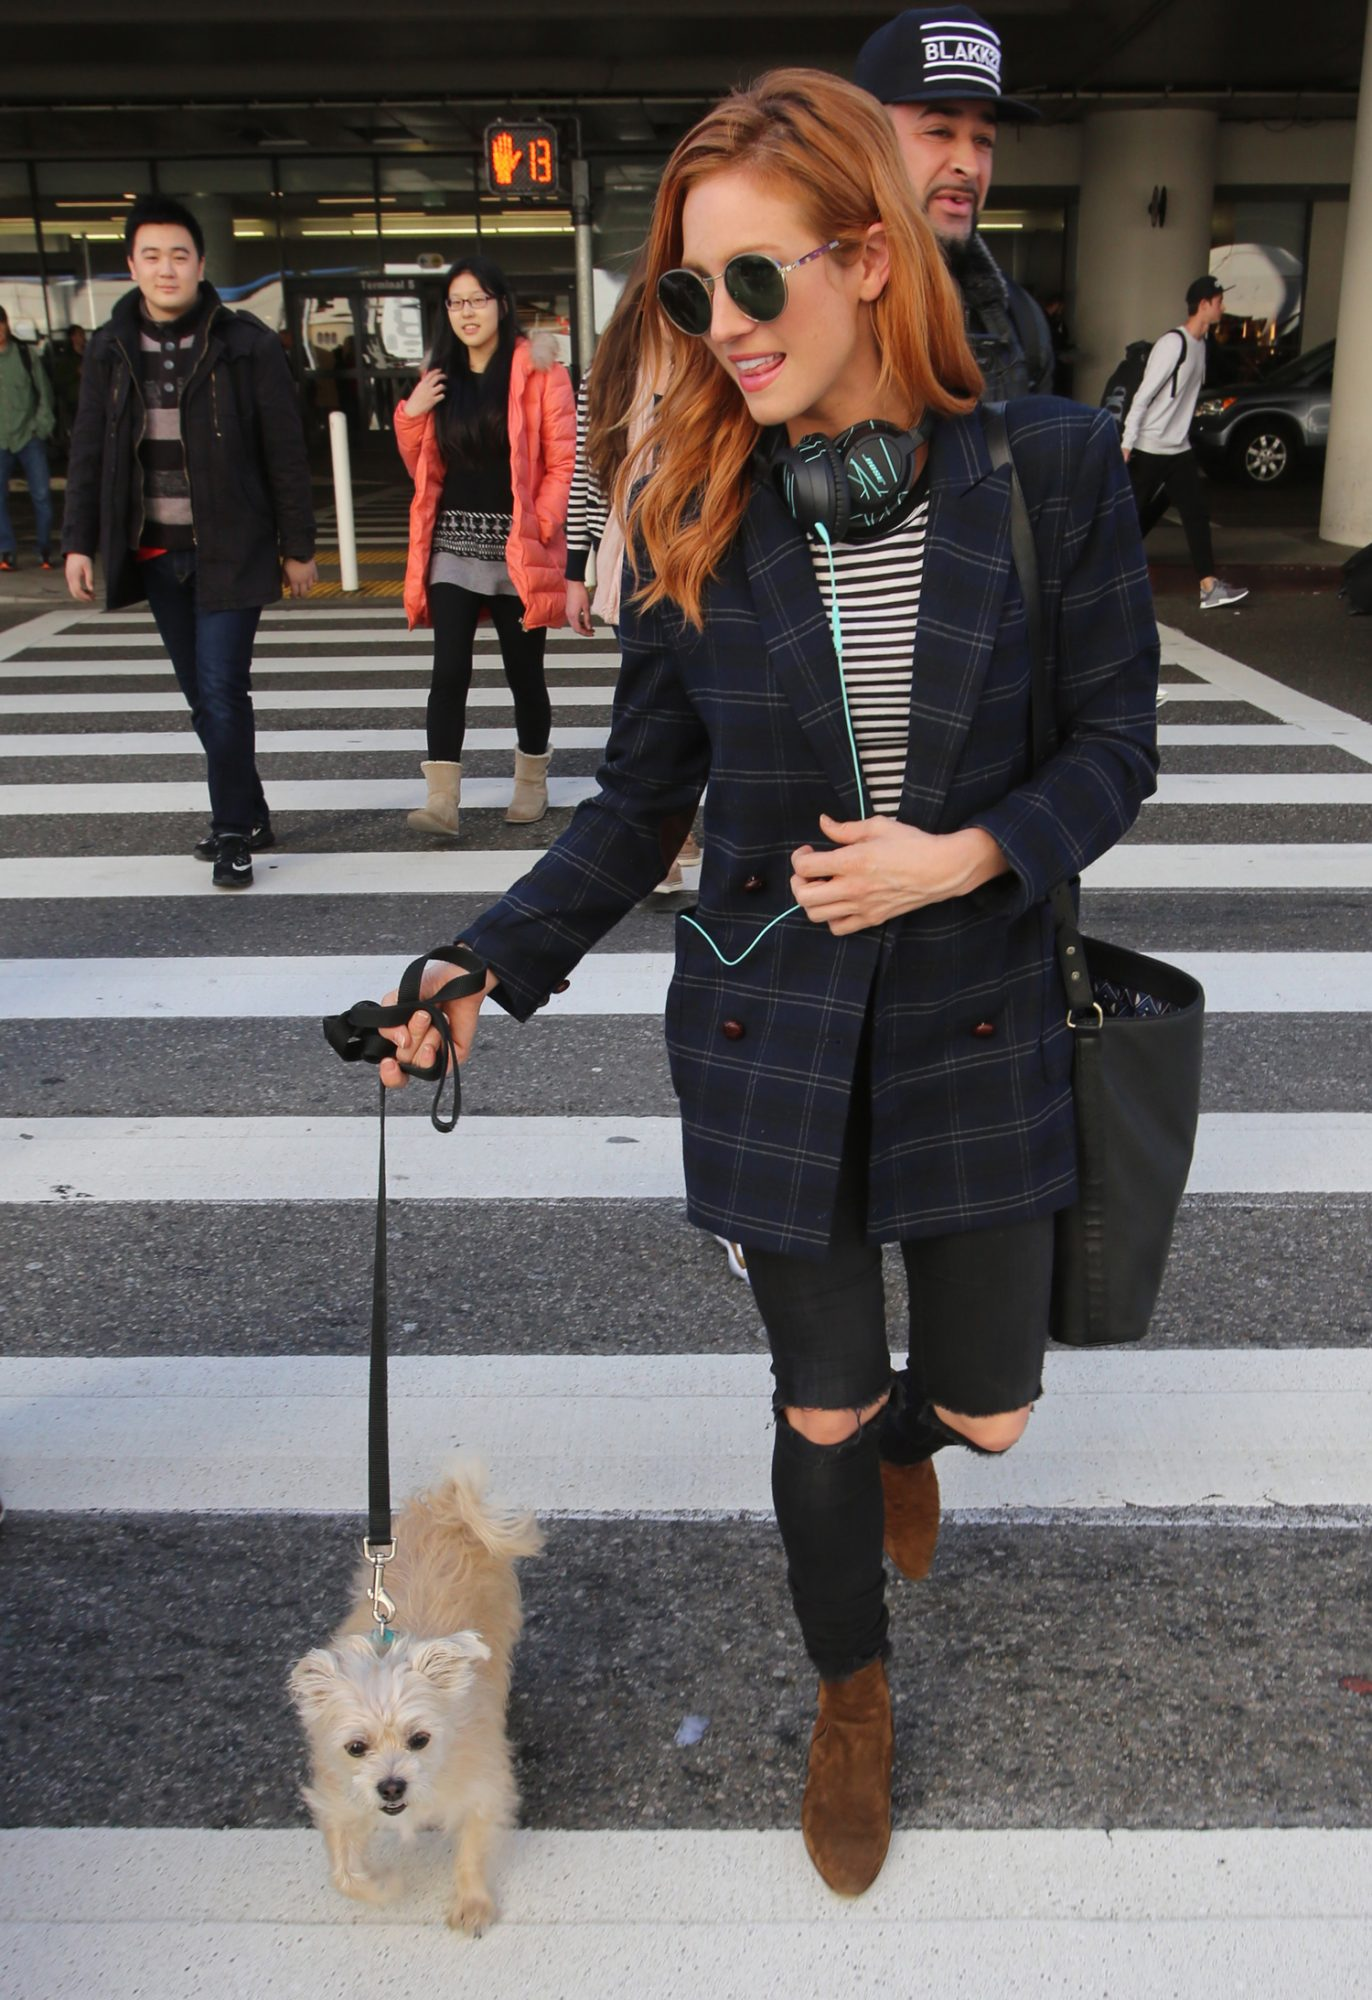 *EXCLUSIVE* Brittany Snow arrives back to LAX with her precious pooch - Part 2